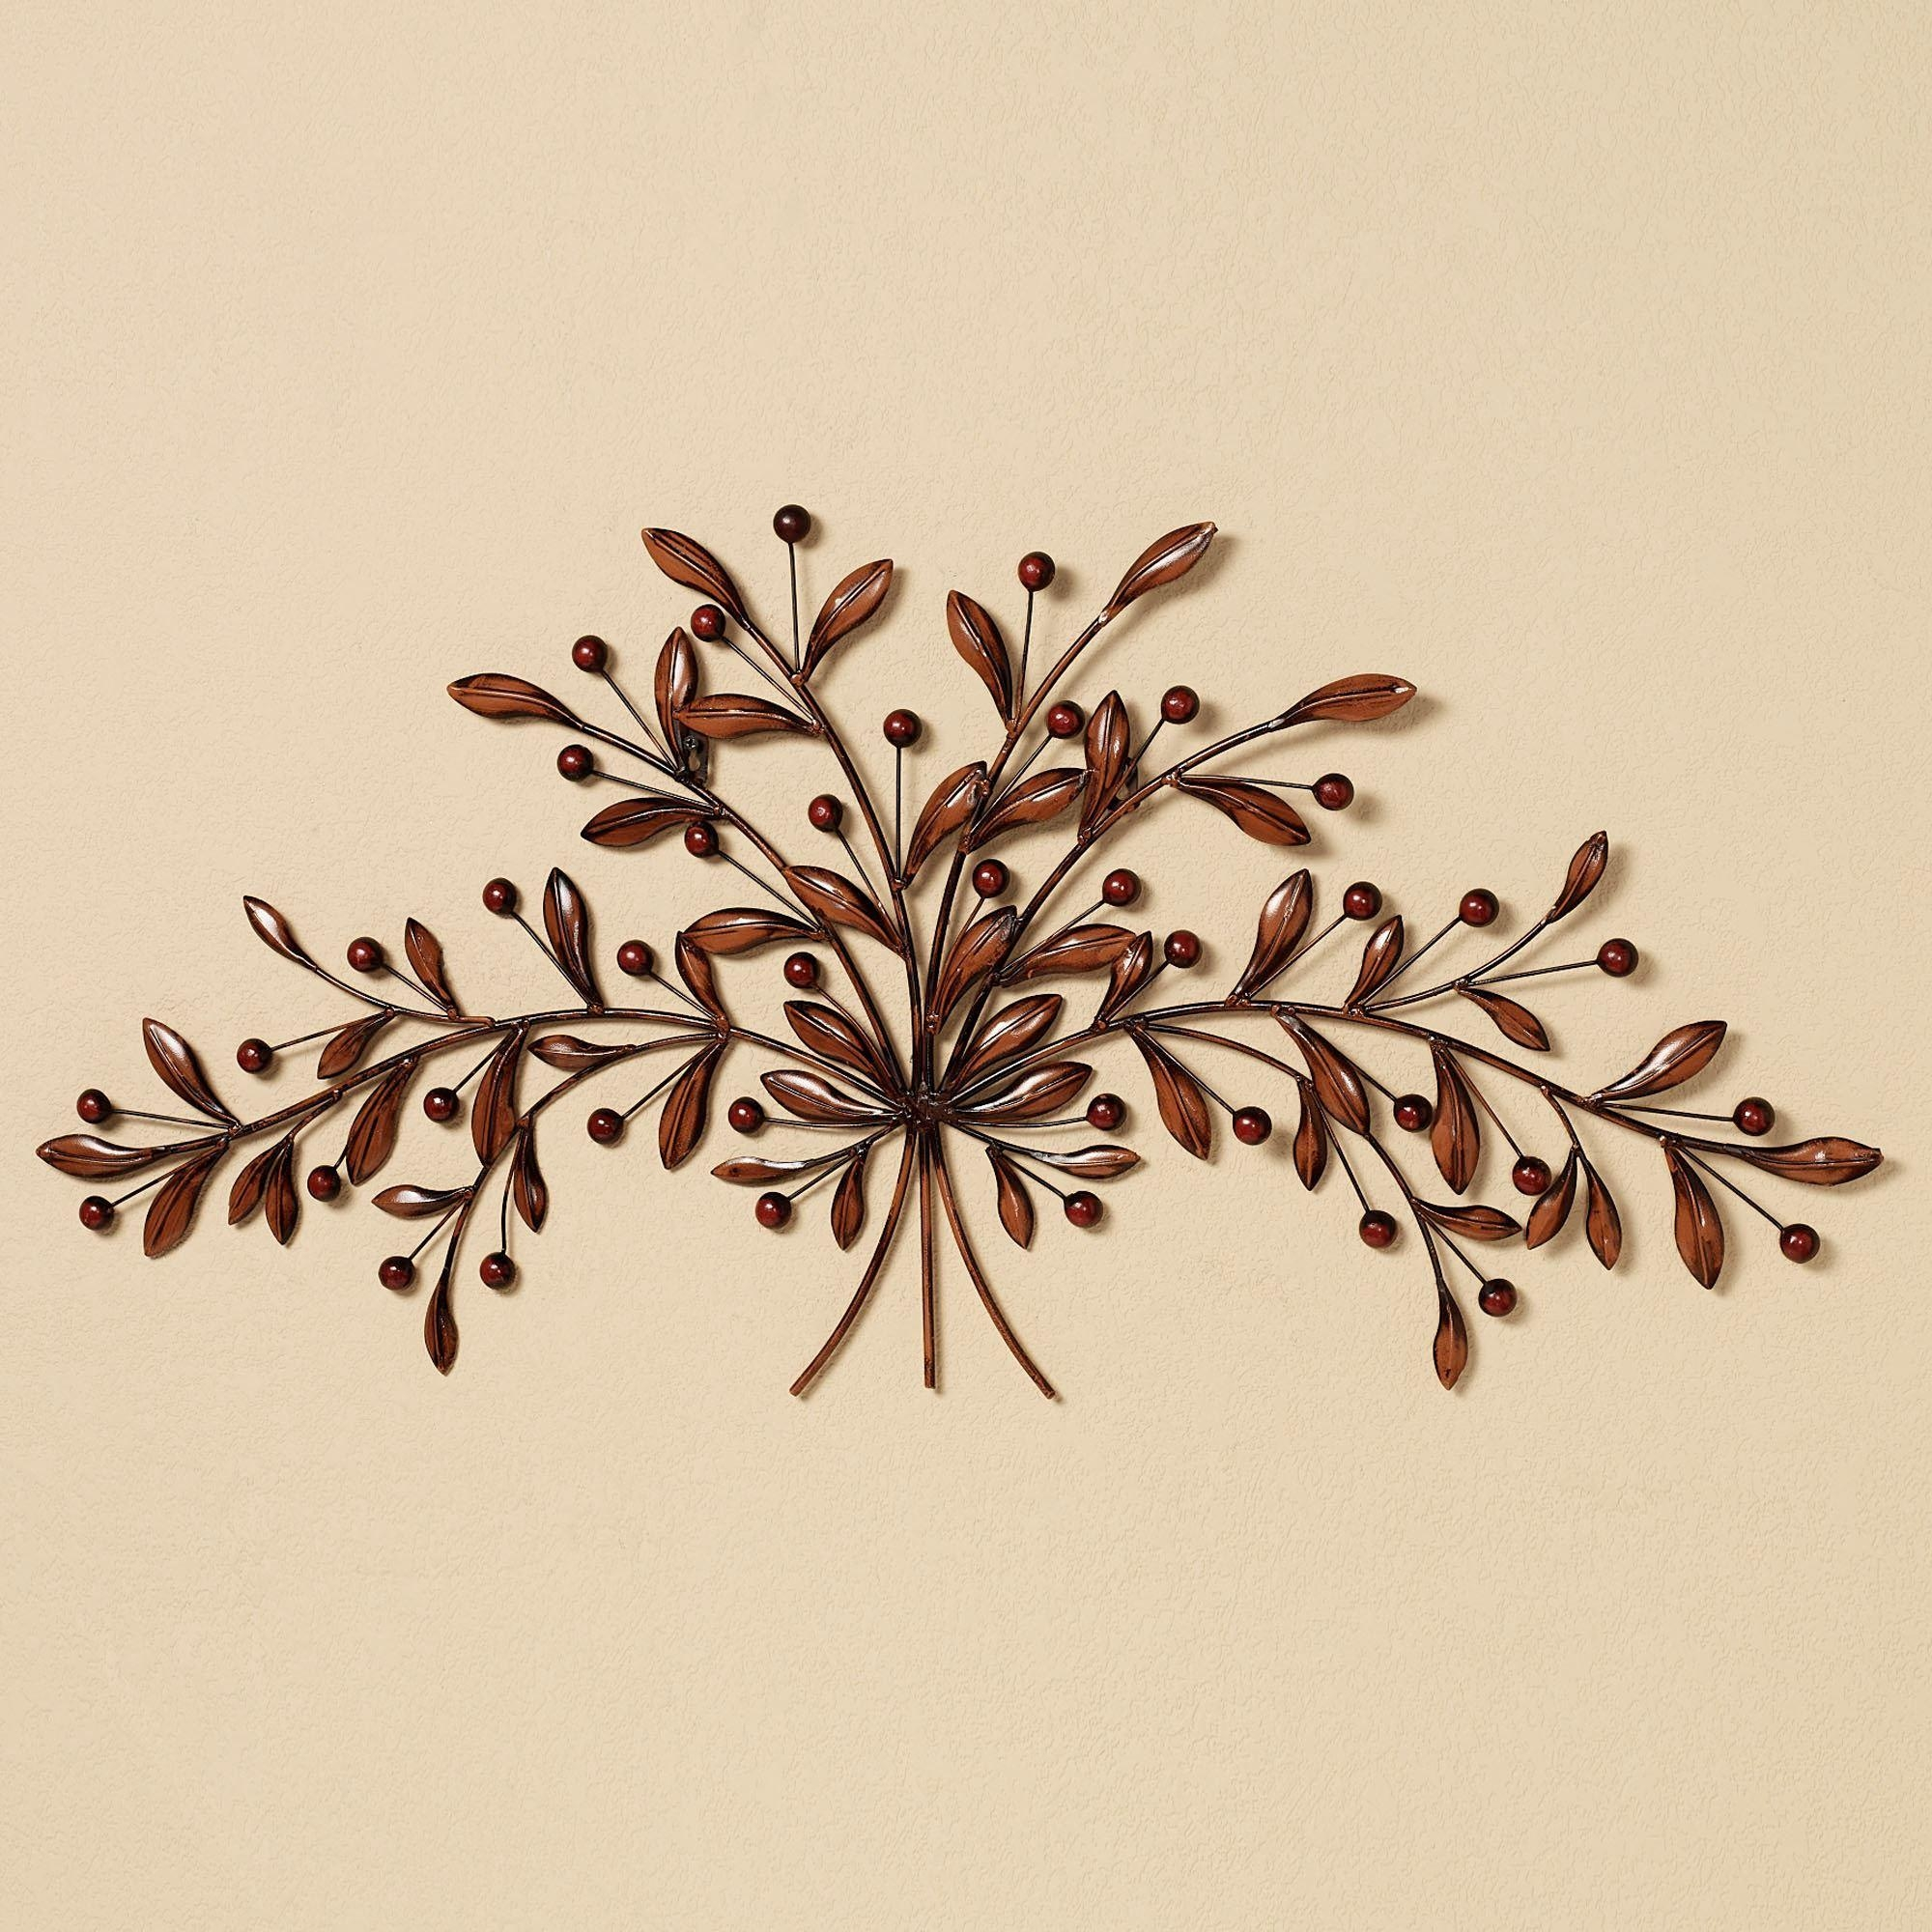 Cantabria Branch Metal Wall Art Spray Inside Exclusive Wall Art (View 19 of 20)